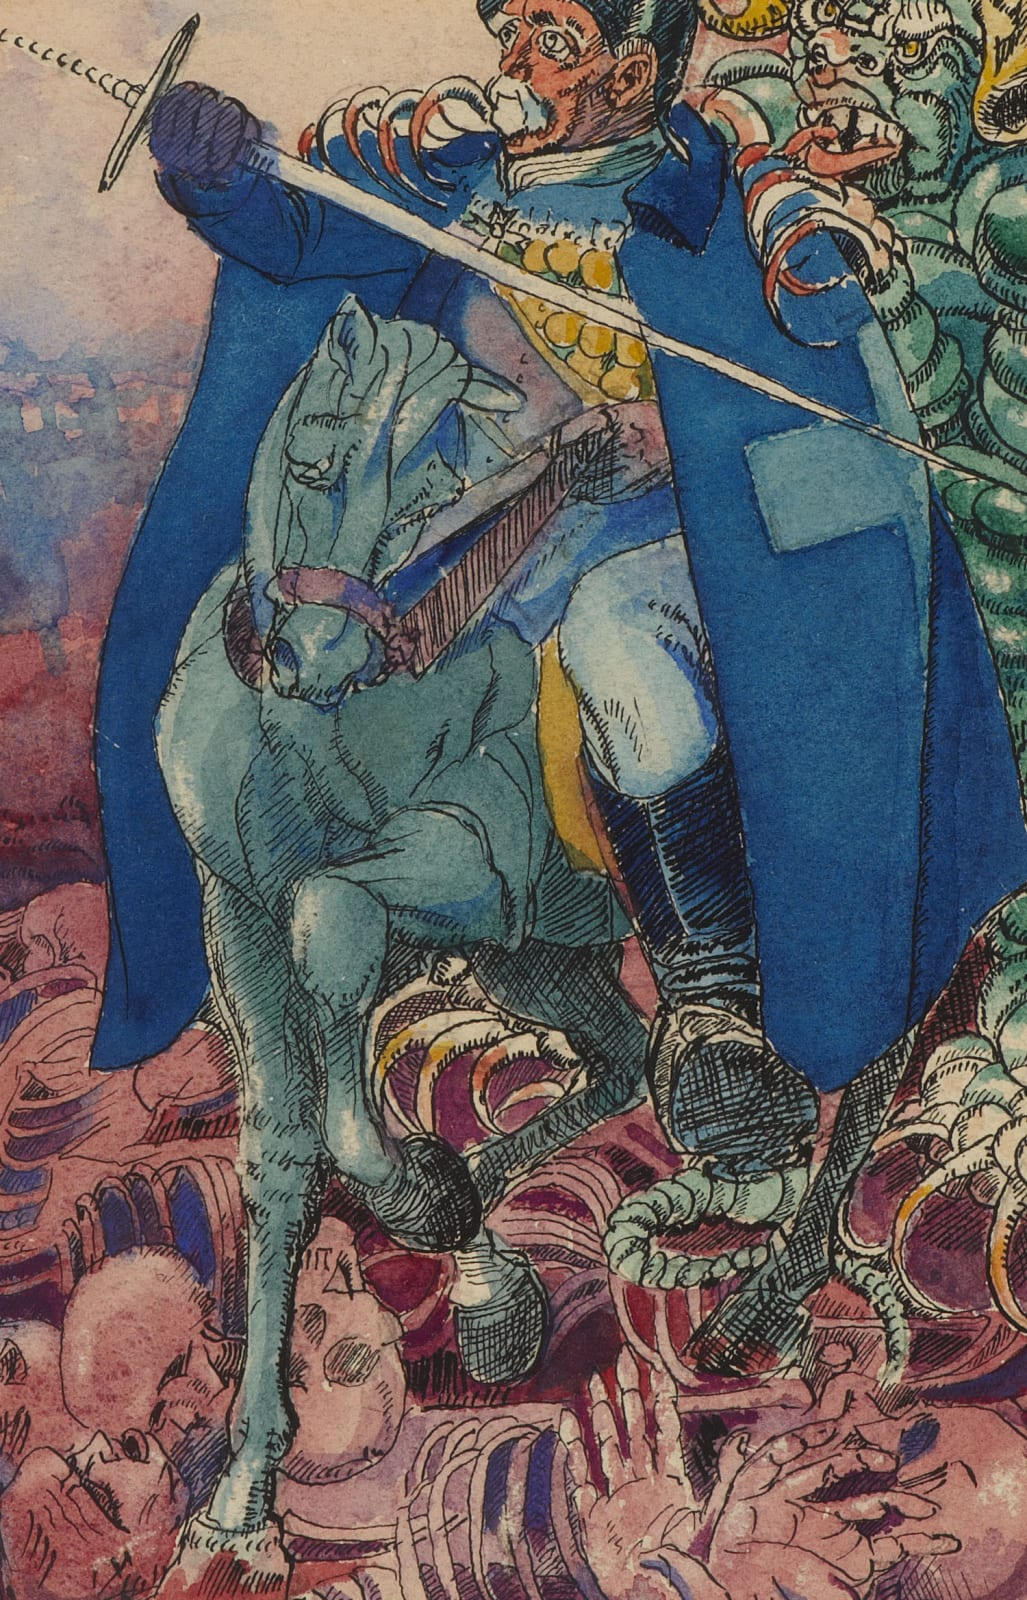 Untitled (Man on a Horse with a Sword) by Alfred Wolmark (1877-1961), 1925. Watercolour, pen and ink on paper.